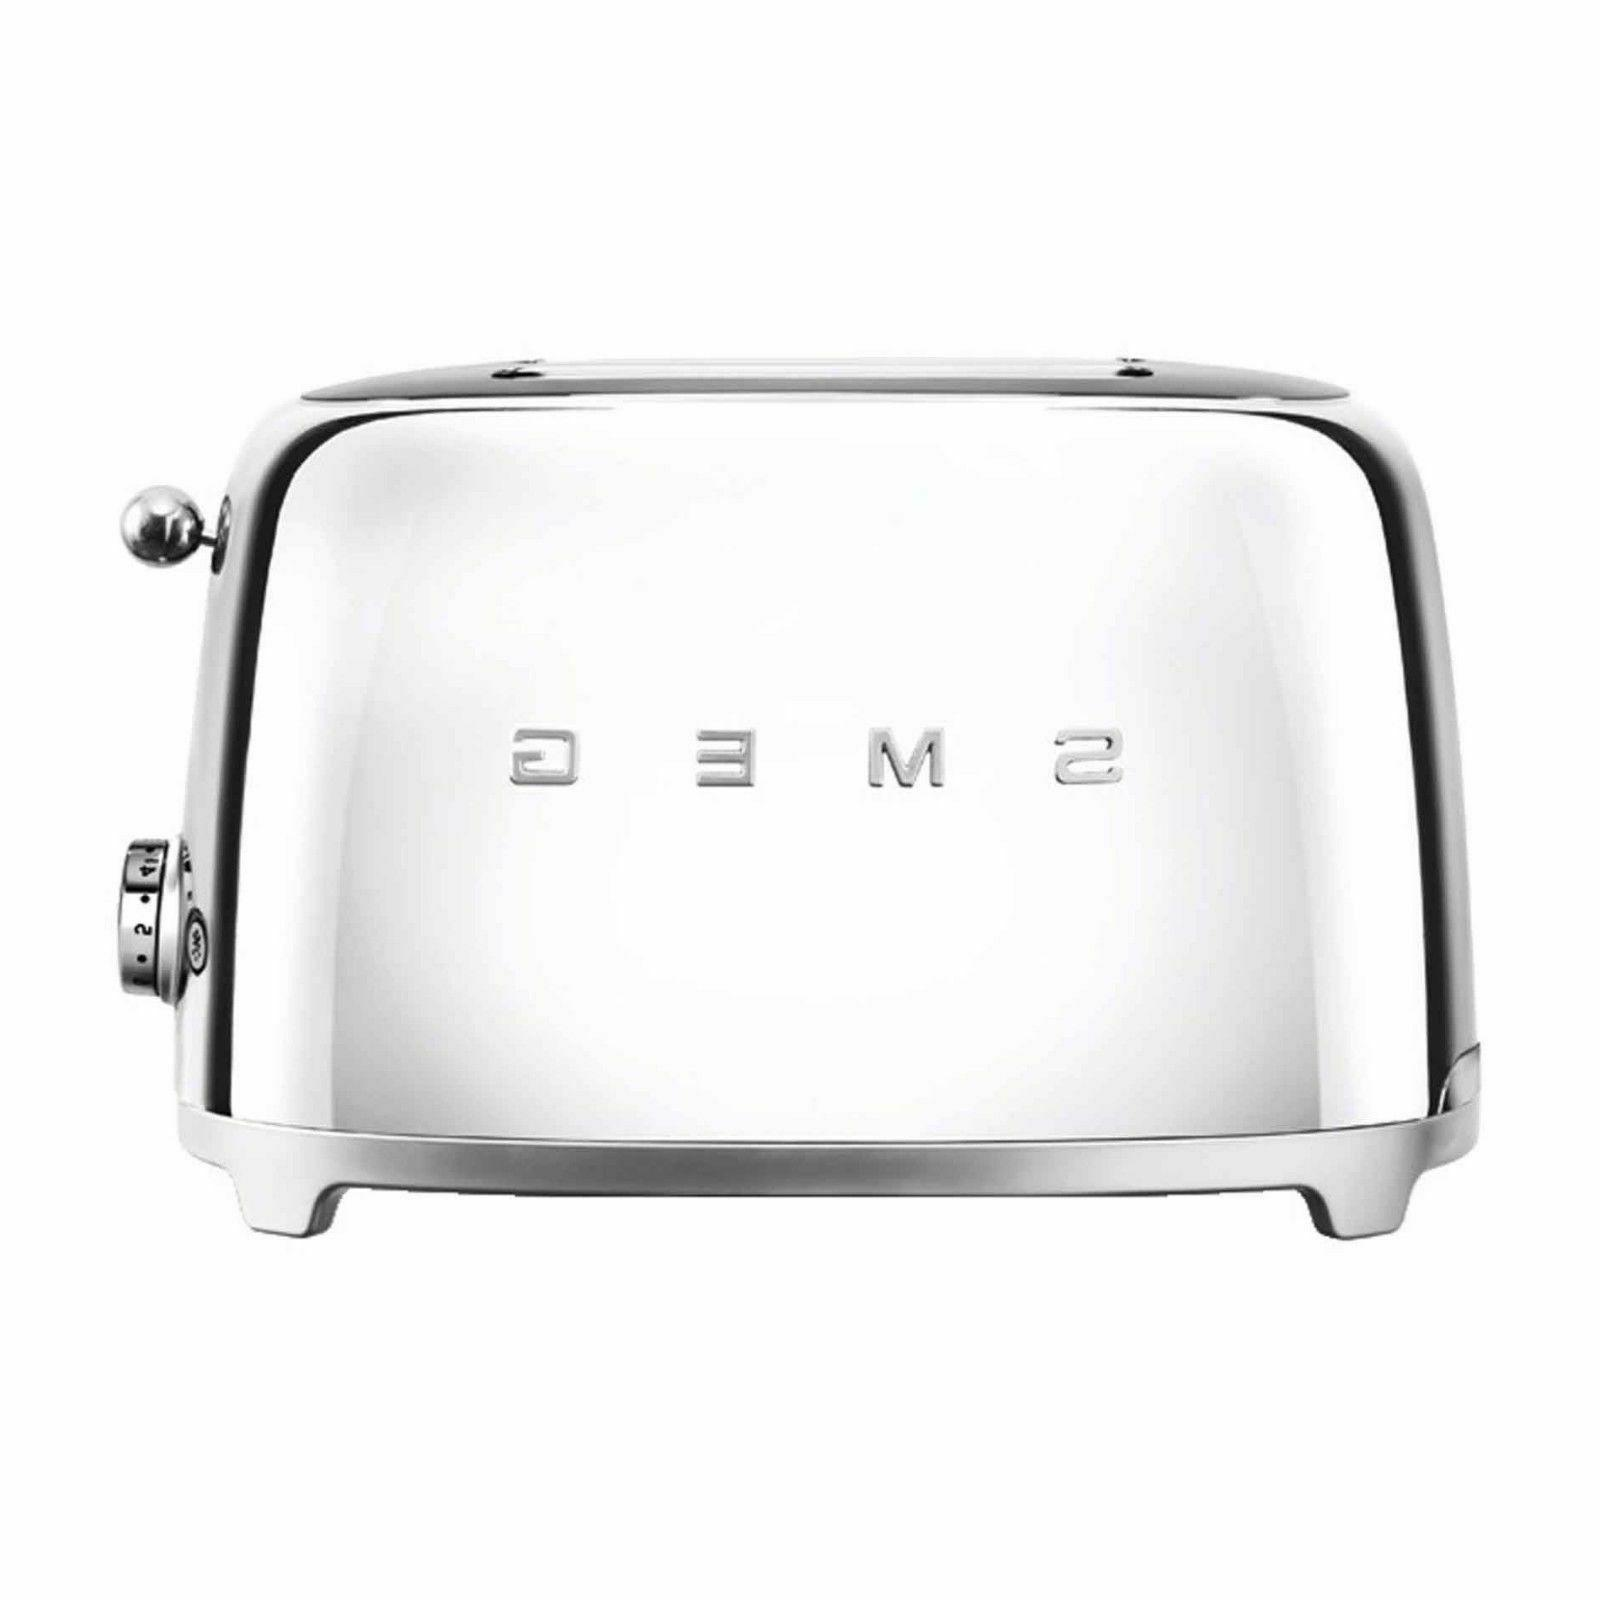 SMEG 50's Retro Style 2-Slice Toaster in Chrome - Brand New!